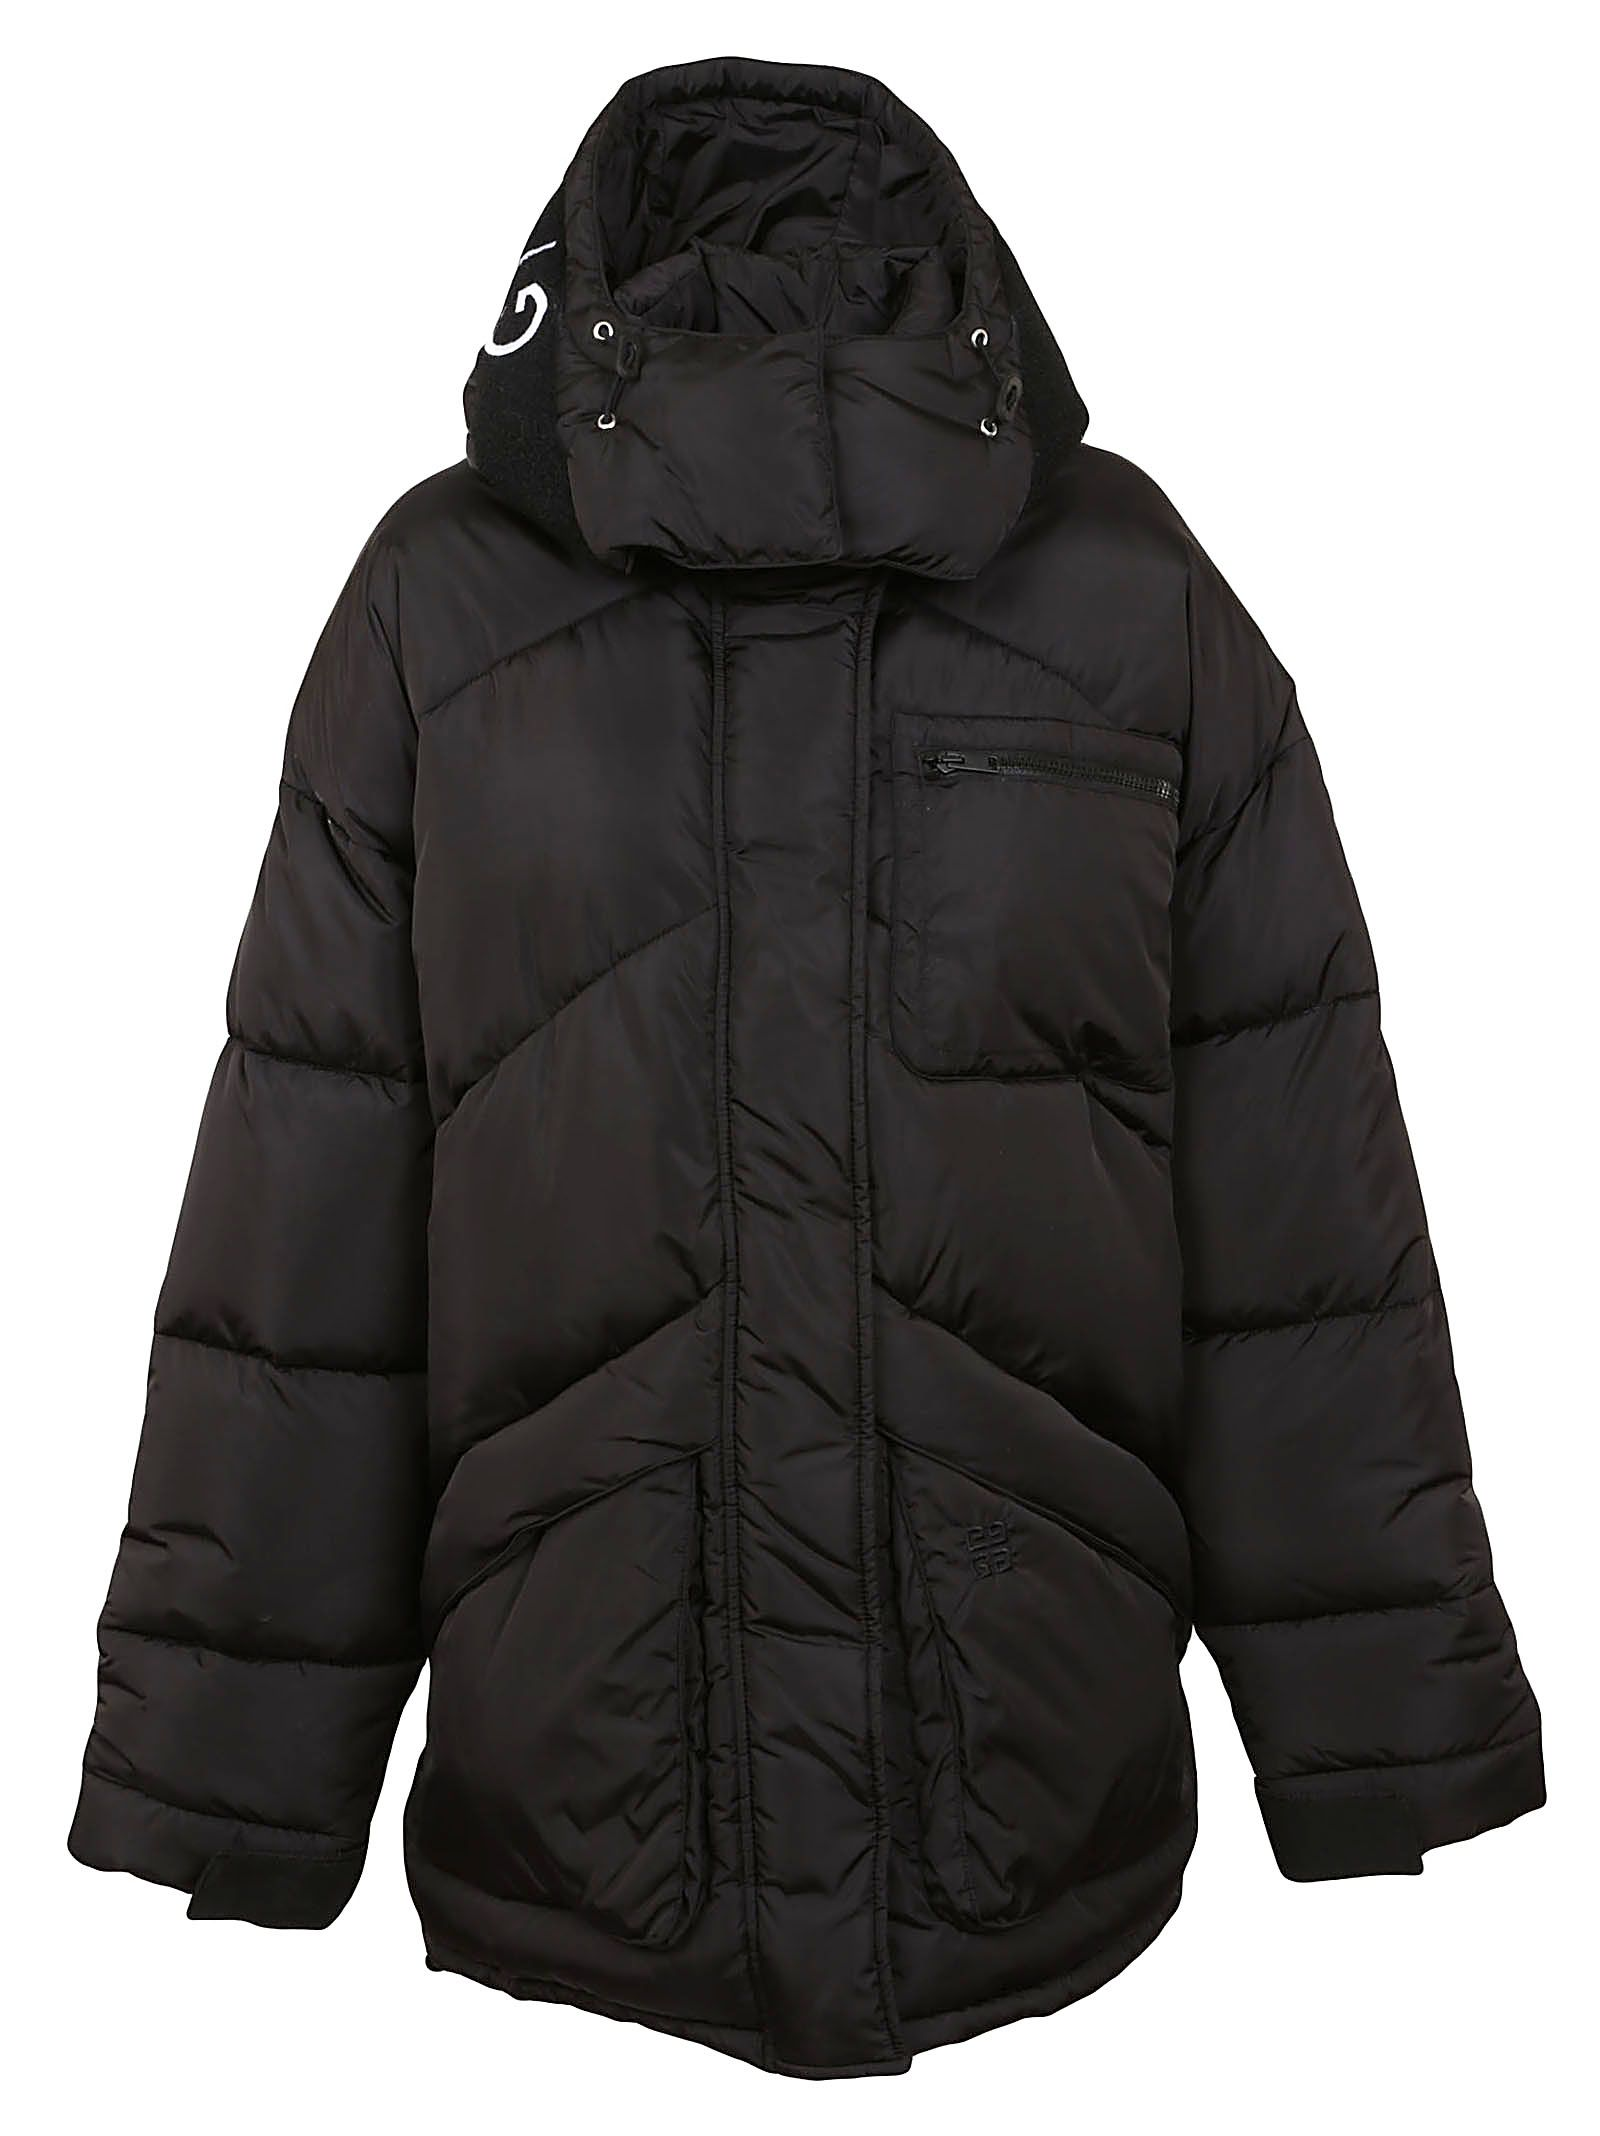 Givenchy Oversized Down Jacket